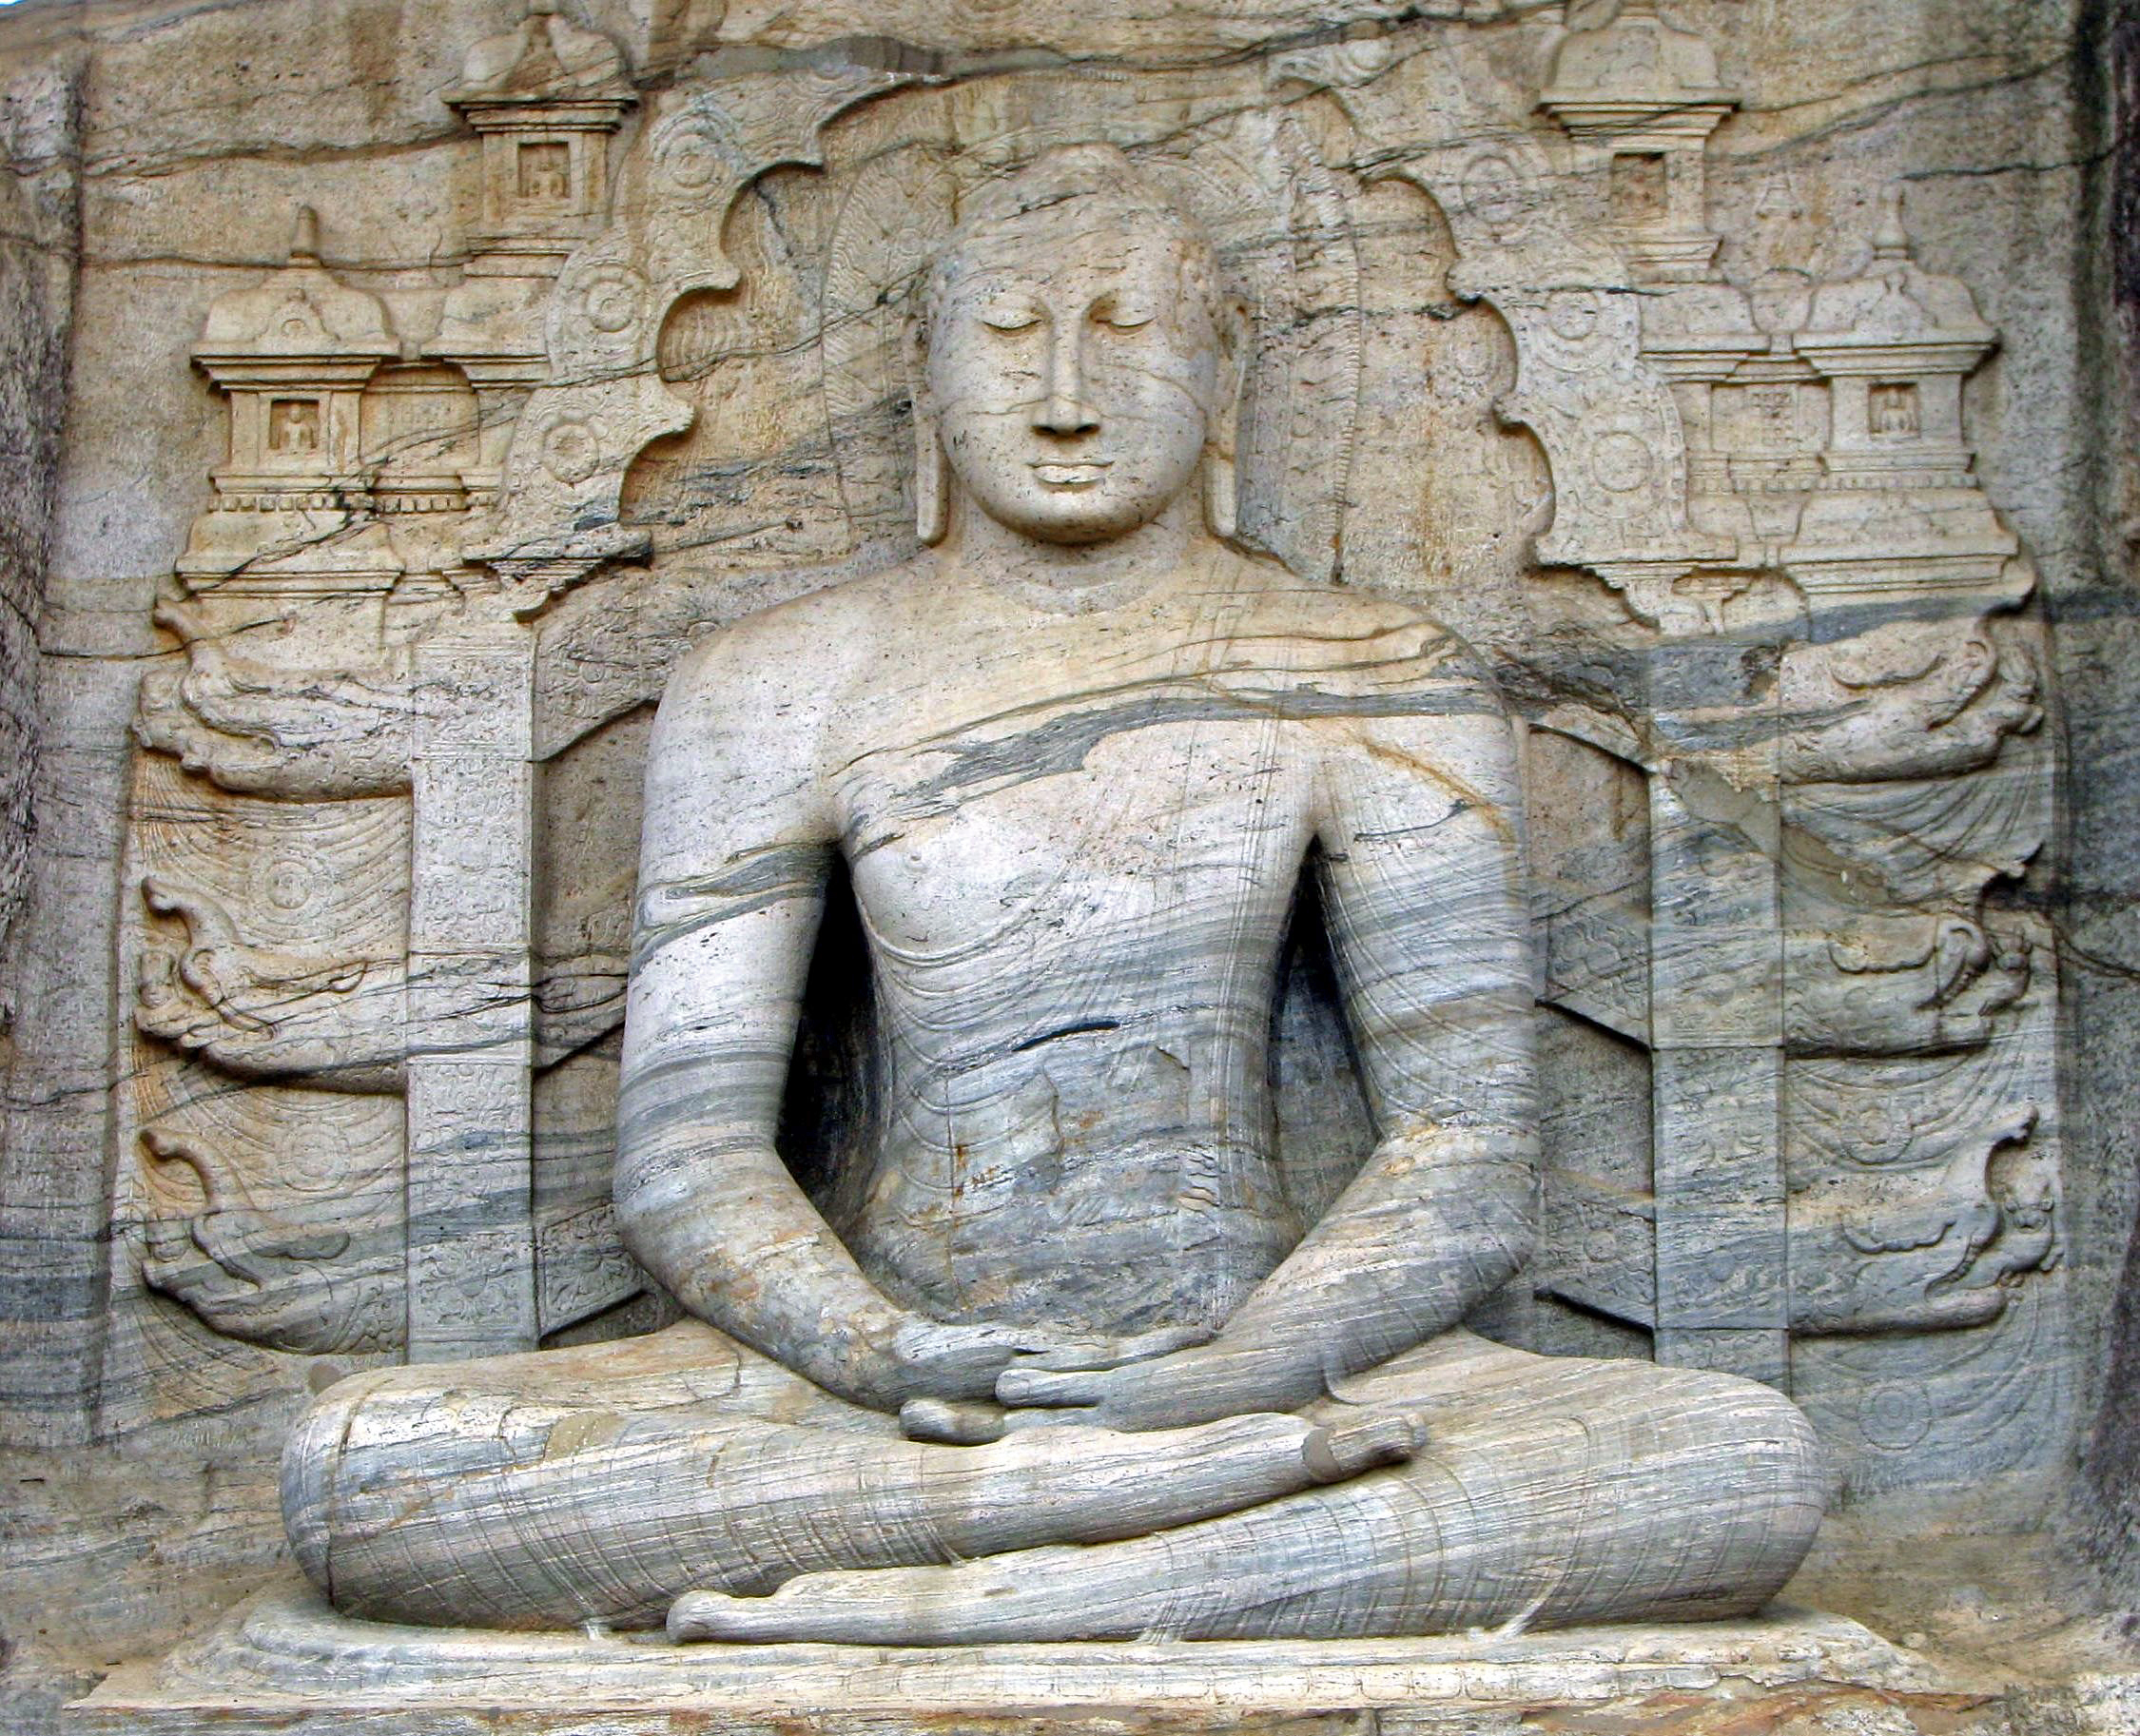 https://upload.wikimedia.org/wikipedia/commons/c/c6/Gal_Viharaya_02.jpg